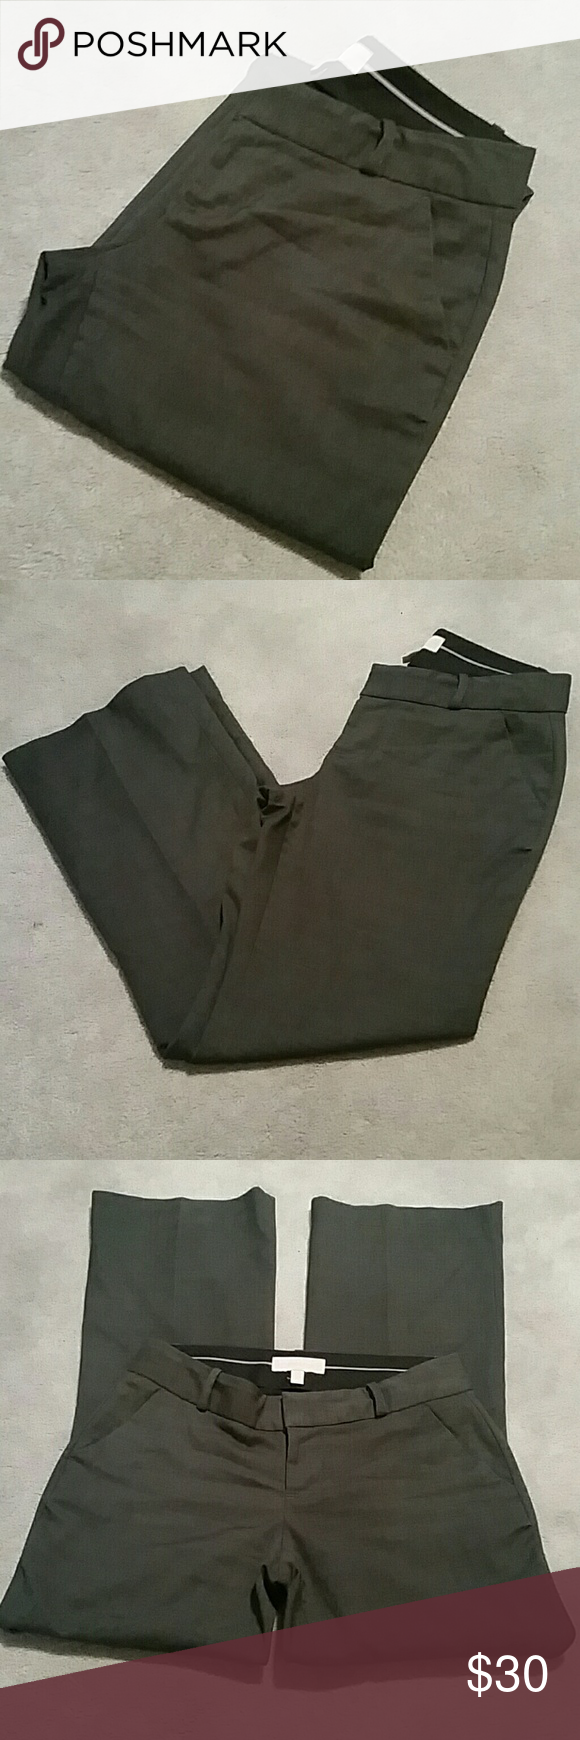 "Banana Republic Martin Fit Slacks sz 2P Excellent Condition from a smoke and pet free home  Martin Fit Slacks in Charcoal Gray  70% polyester /28% rayon/ 2% spandex  Fully lined 100% polyester  Two front pockets, decorative back pockets Approx Measurements :  Waist 14.5"" Rise 8"" Inseam 29"" Banana Republic Pants"